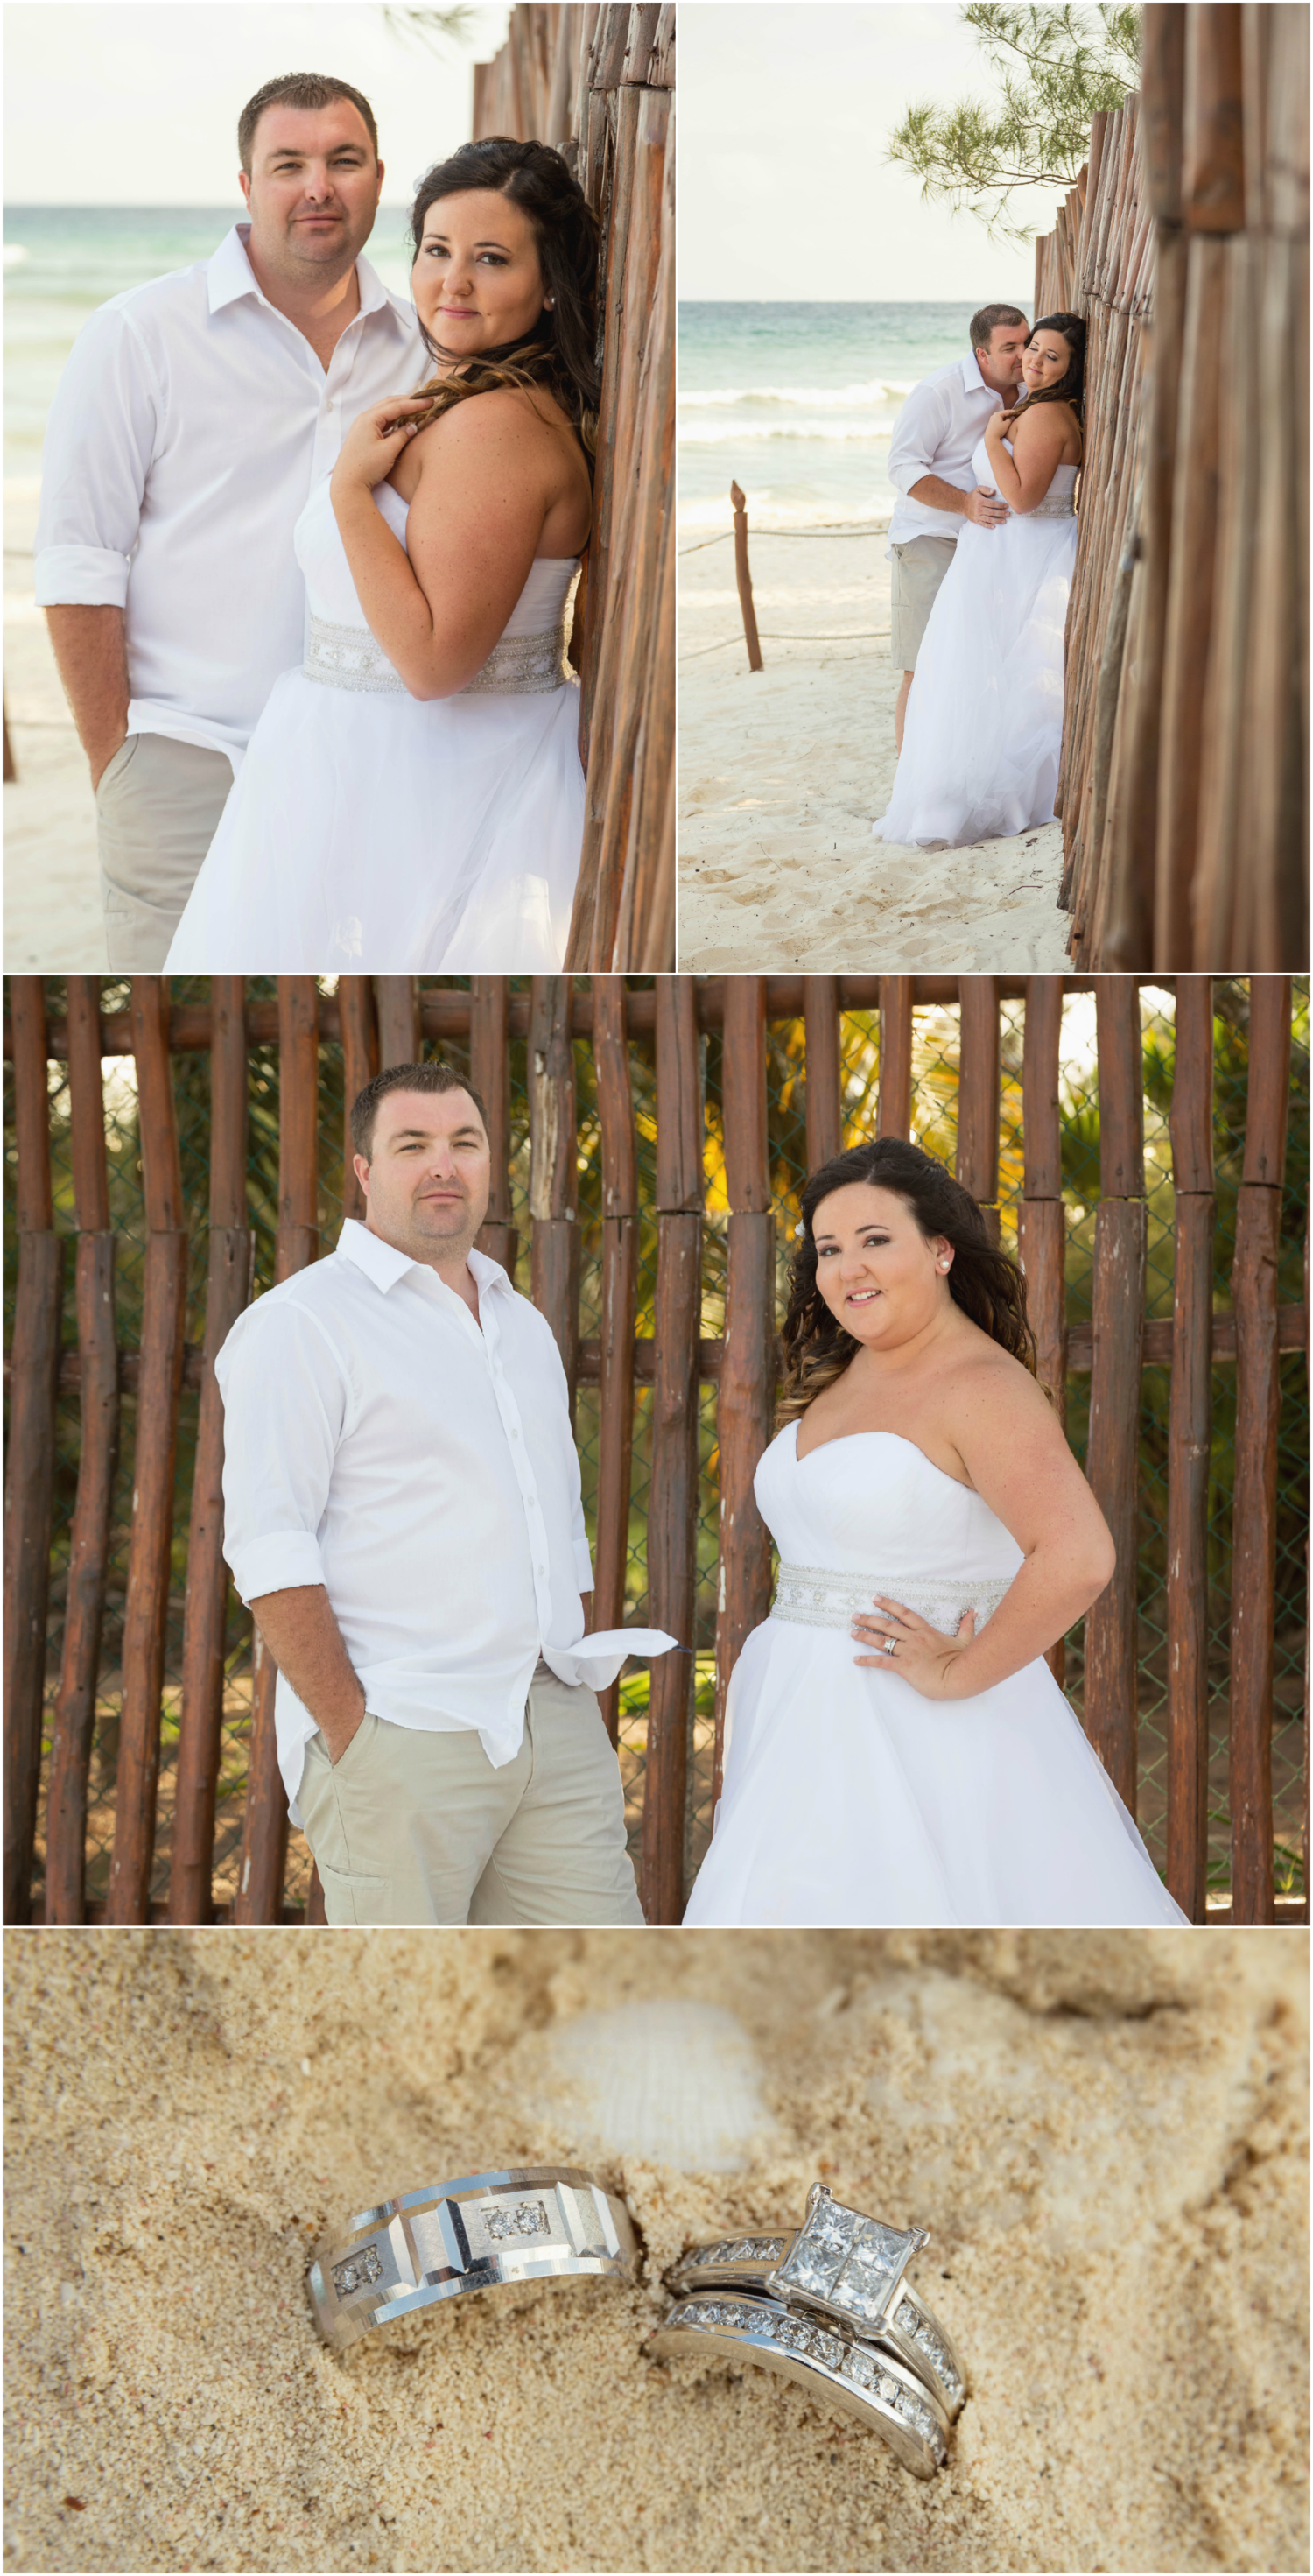 Dean amberus trashthedress destination weddings destination